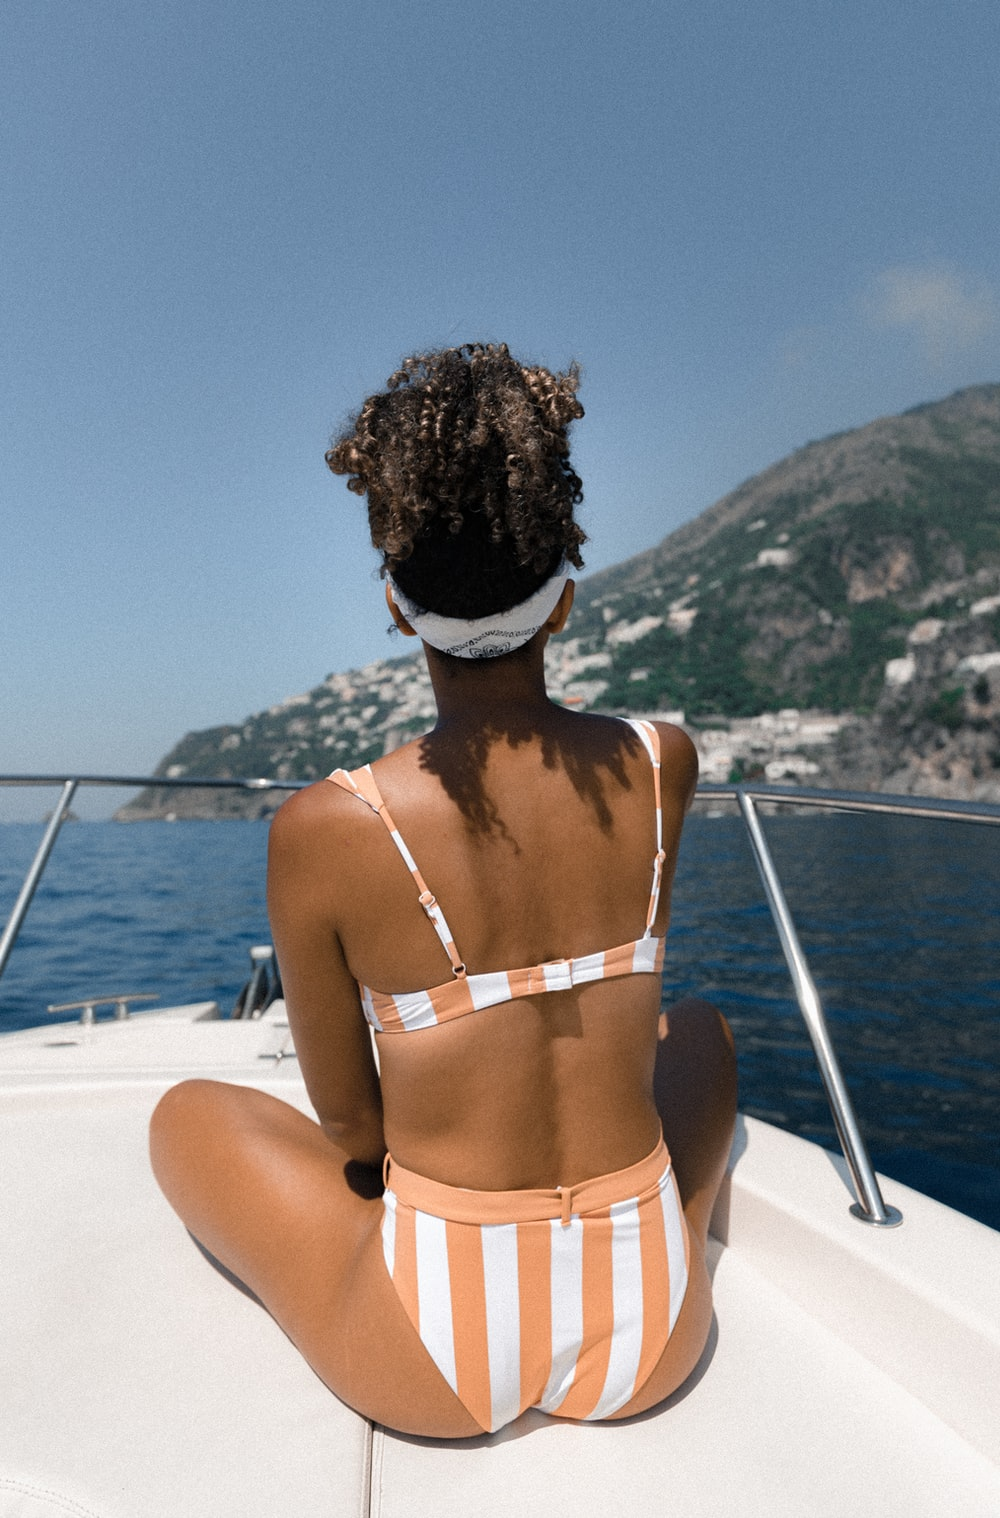 woman wearing white-and-brown bikini set while sitting on boat watching island